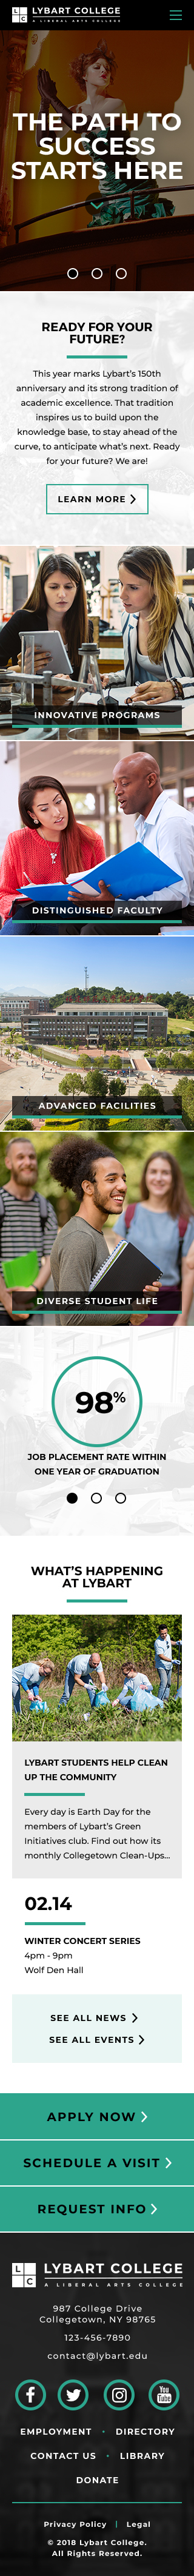 Lybart College Theme Homepage Mobile Preview